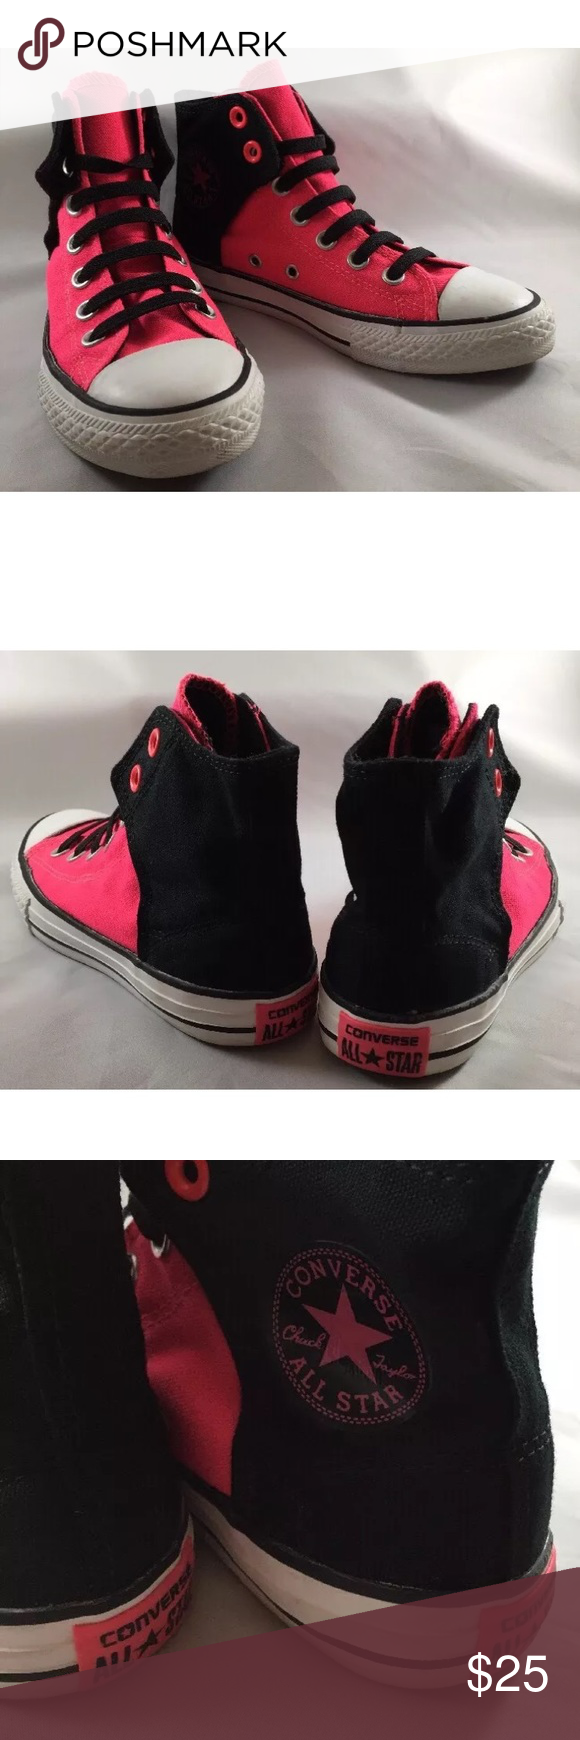 99e721989210 Girls converse high top pink black sneakers Converse all stars - very gently  used shoes - big girl size 2 - Velcro Converse Shoes Sneakers